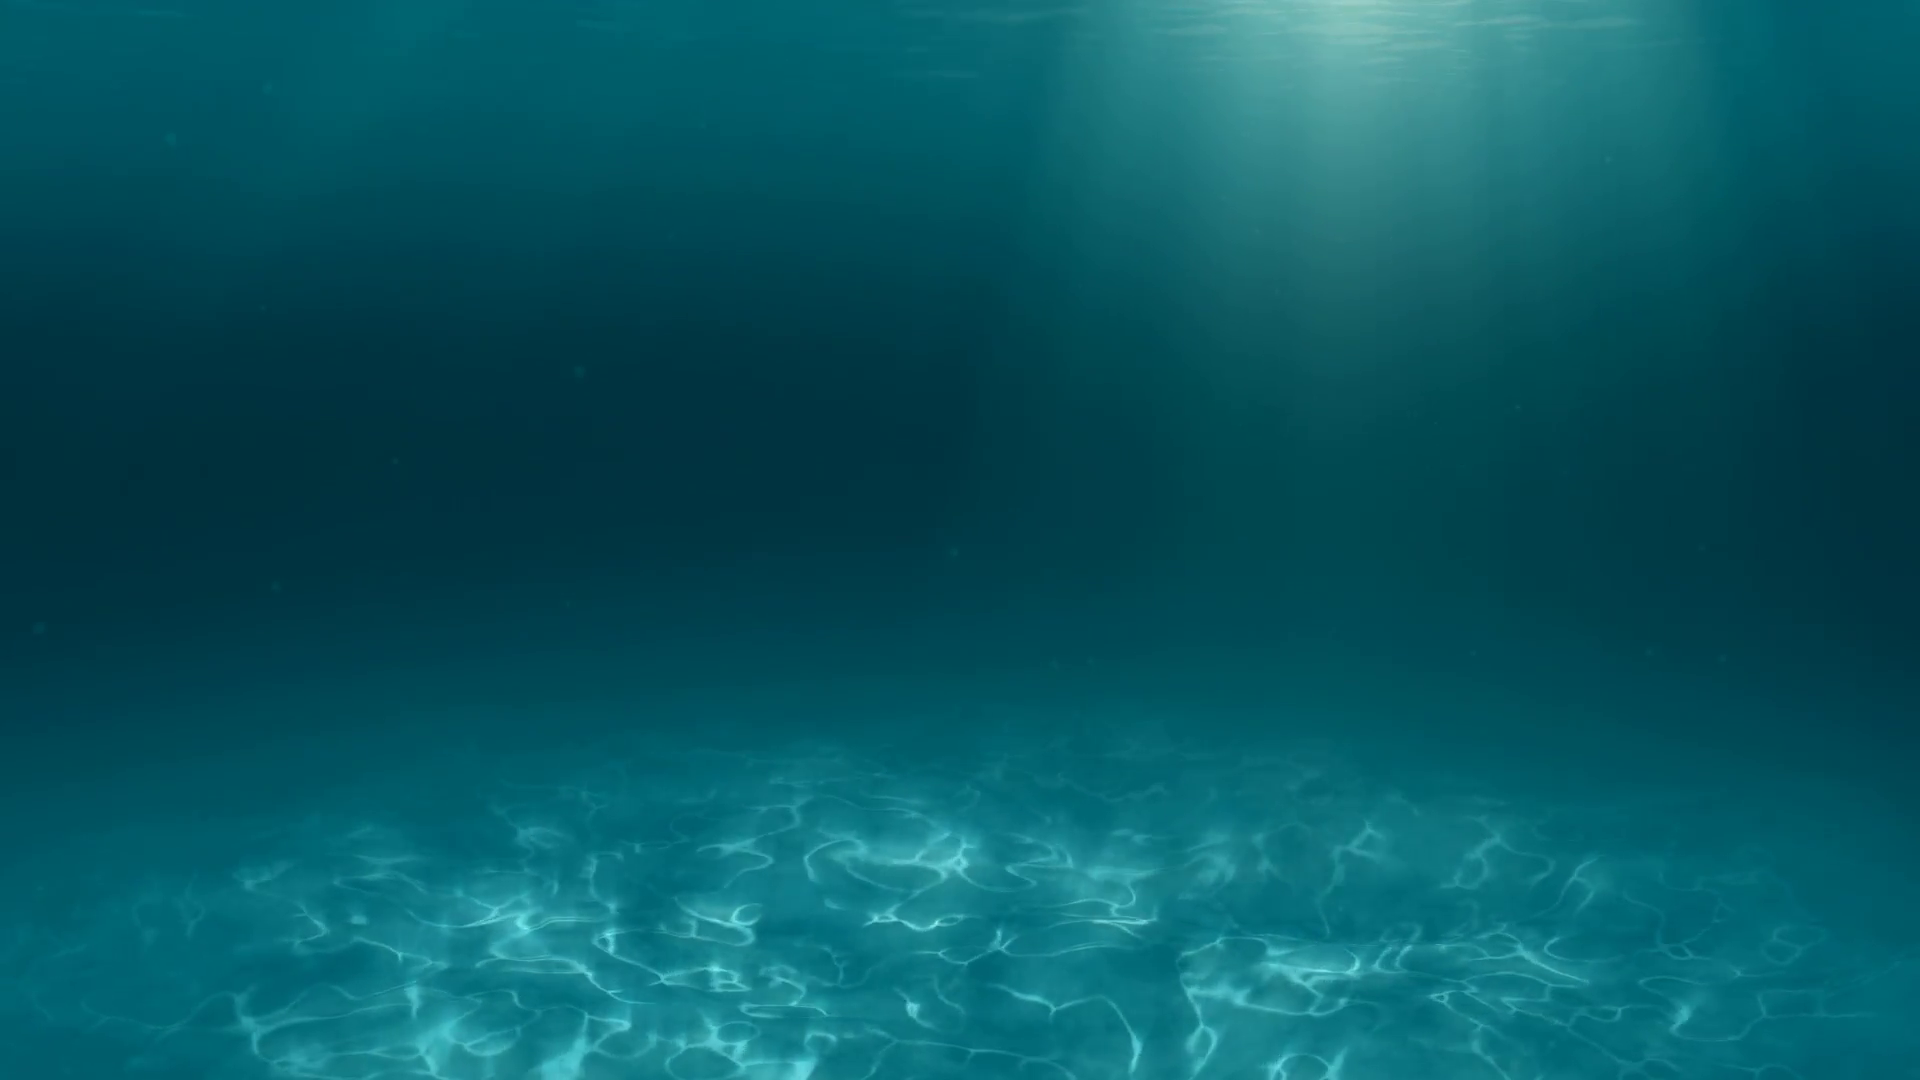 Underwater scene of ocean floor with light rays from surface and floating  algae Motion Background.